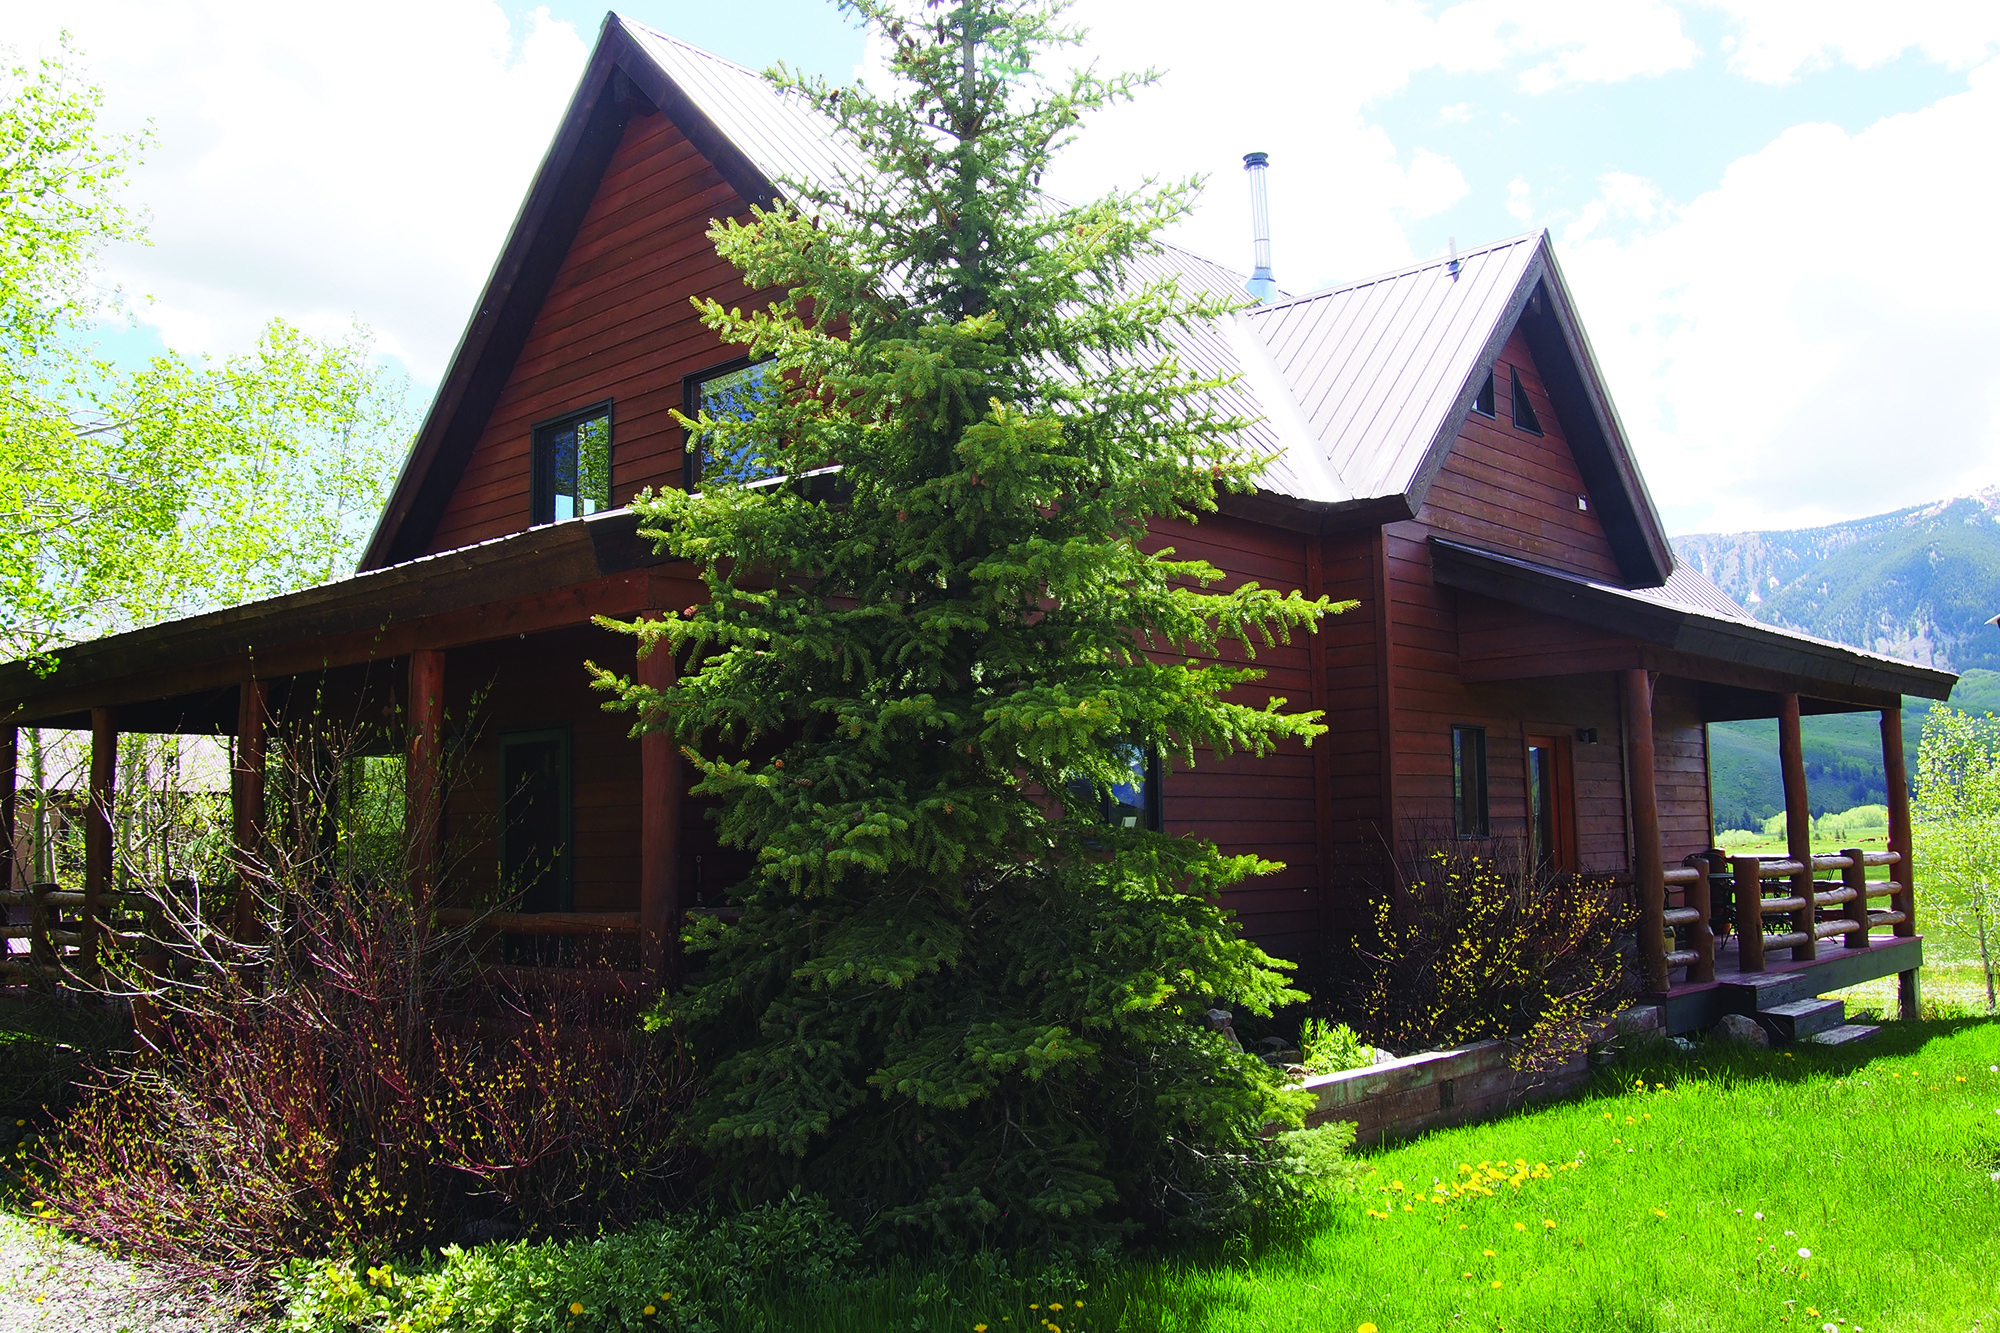 Single Family Home for Sale at Grand Views 121 Goren Street Crested Butte, Colorado 81224 United States